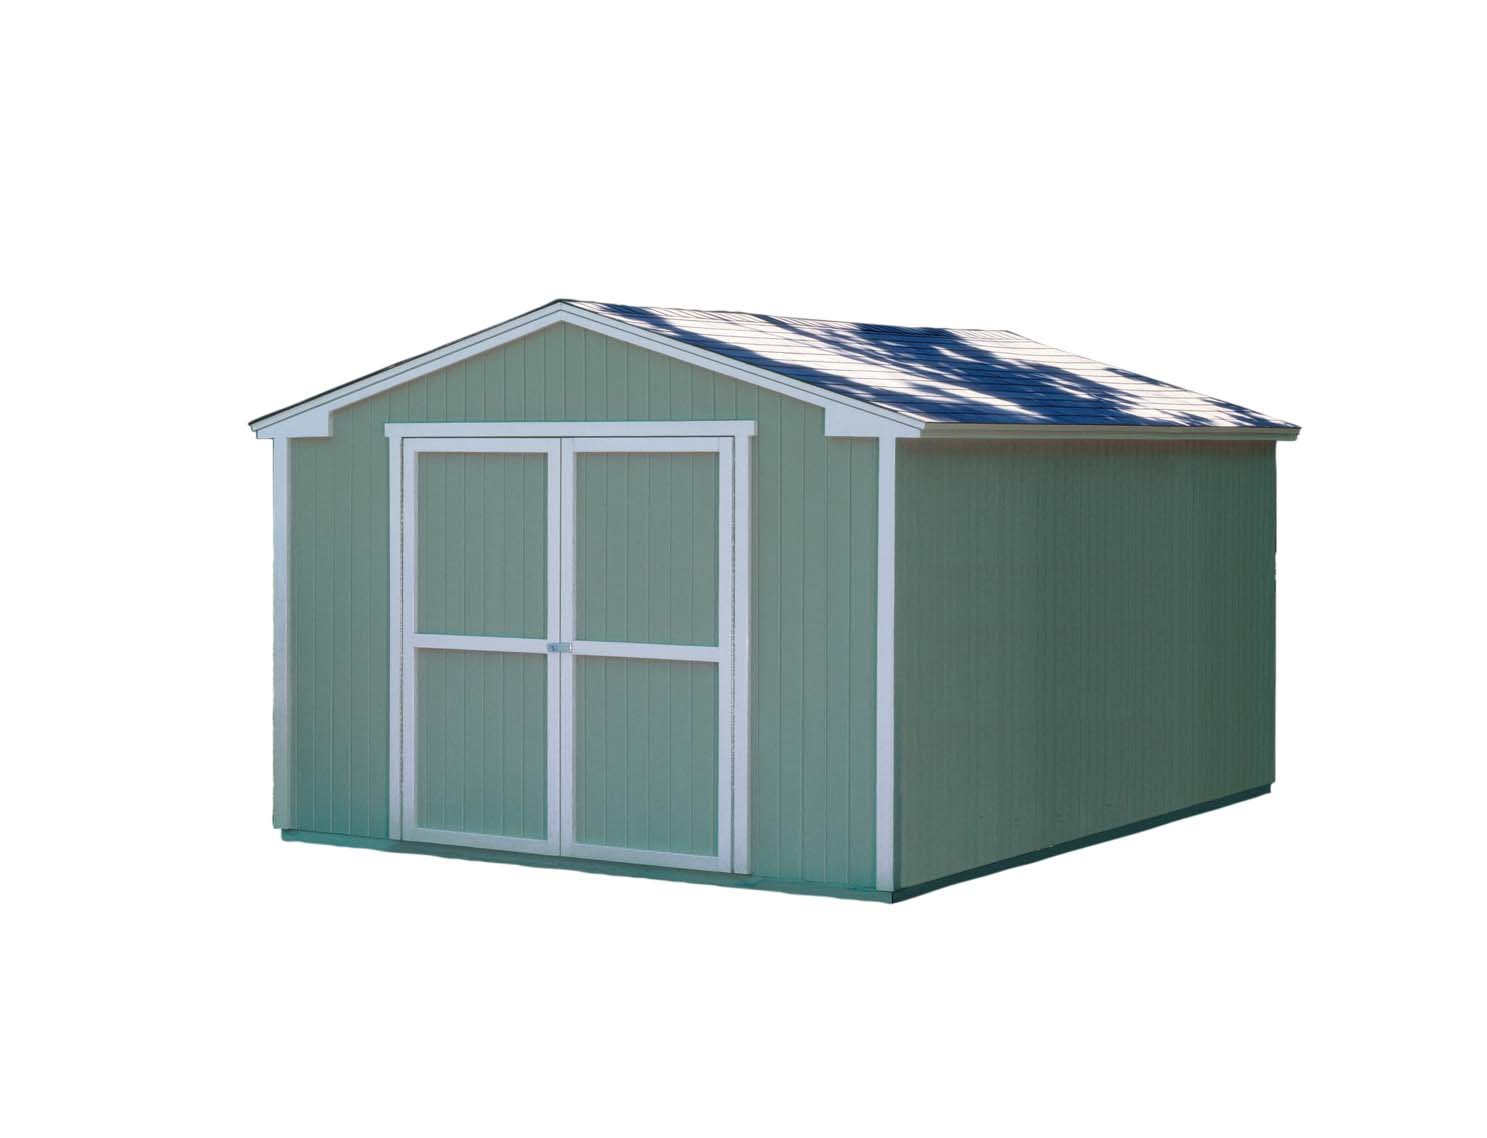 Amazon.com : Handy Home Products 10-Feet by 16-Feet Cumberland Shed ...